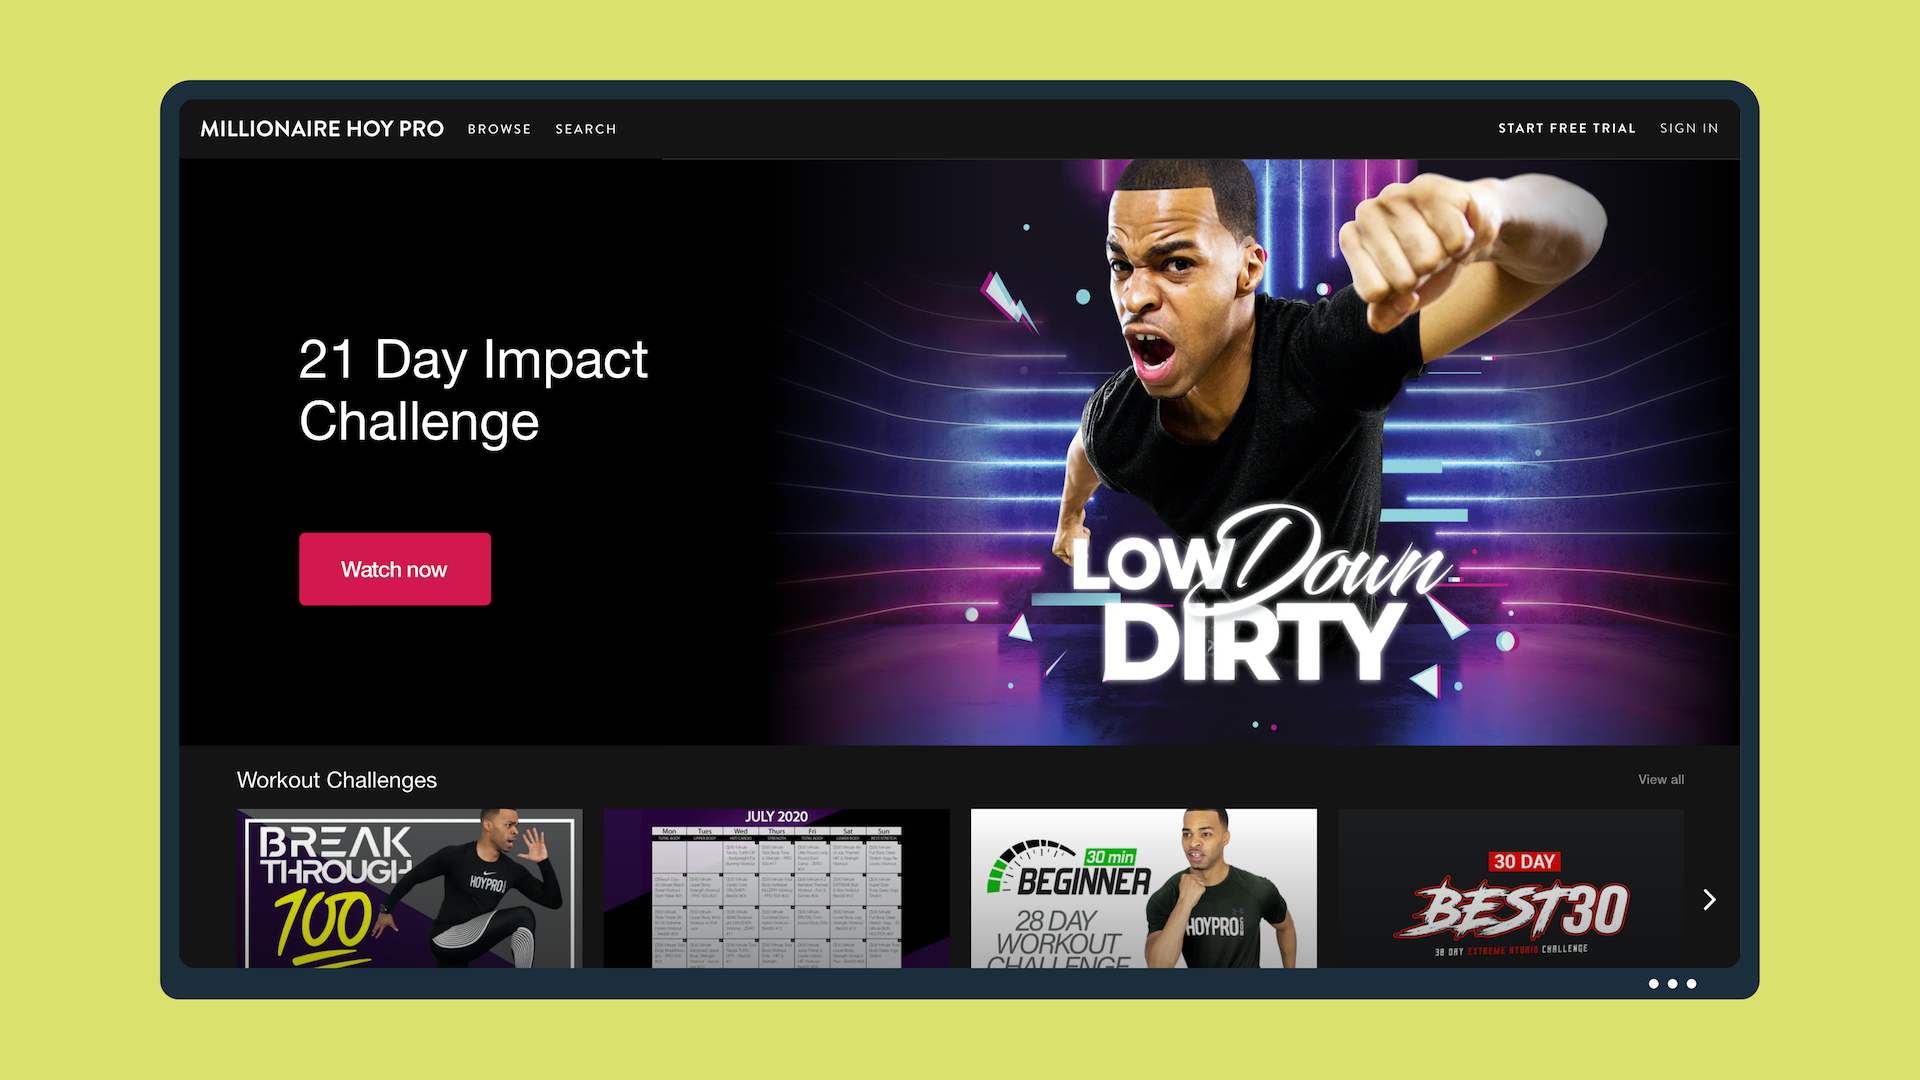 An image of Millionaire Hoy's Vimeo OTT fitness channel